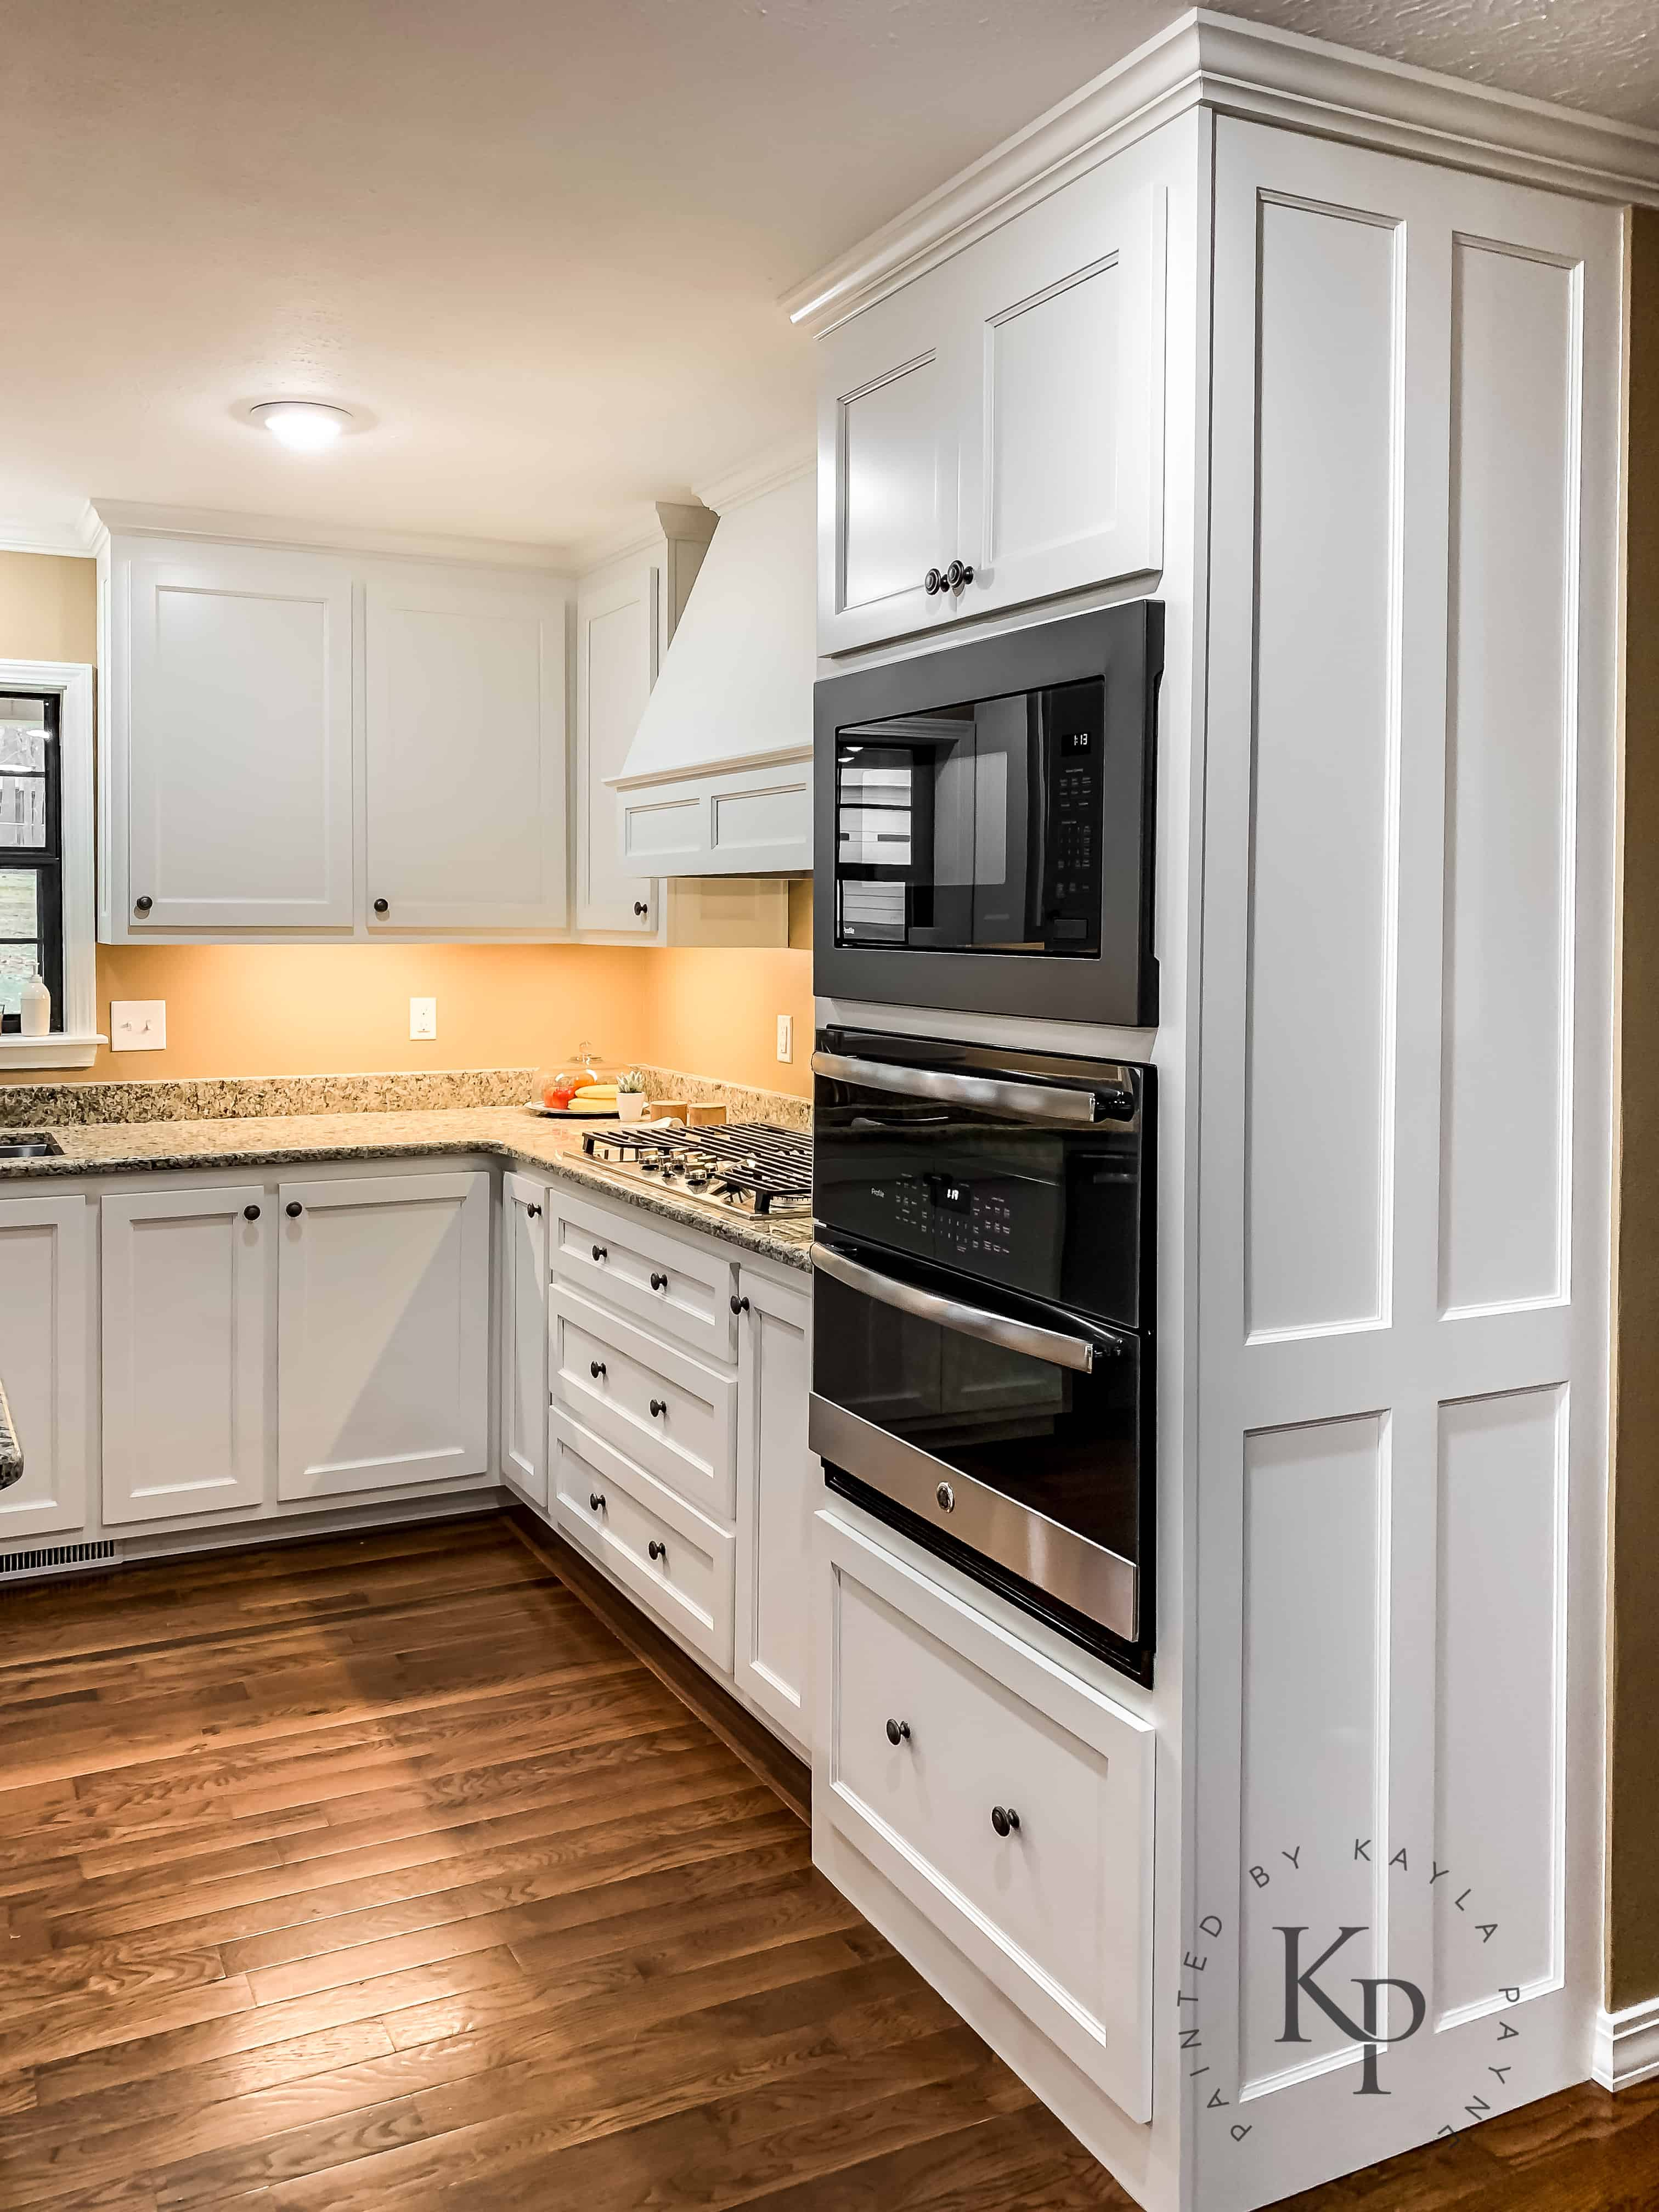 Kitchen Cabinets In Sherwin Williams Dover White